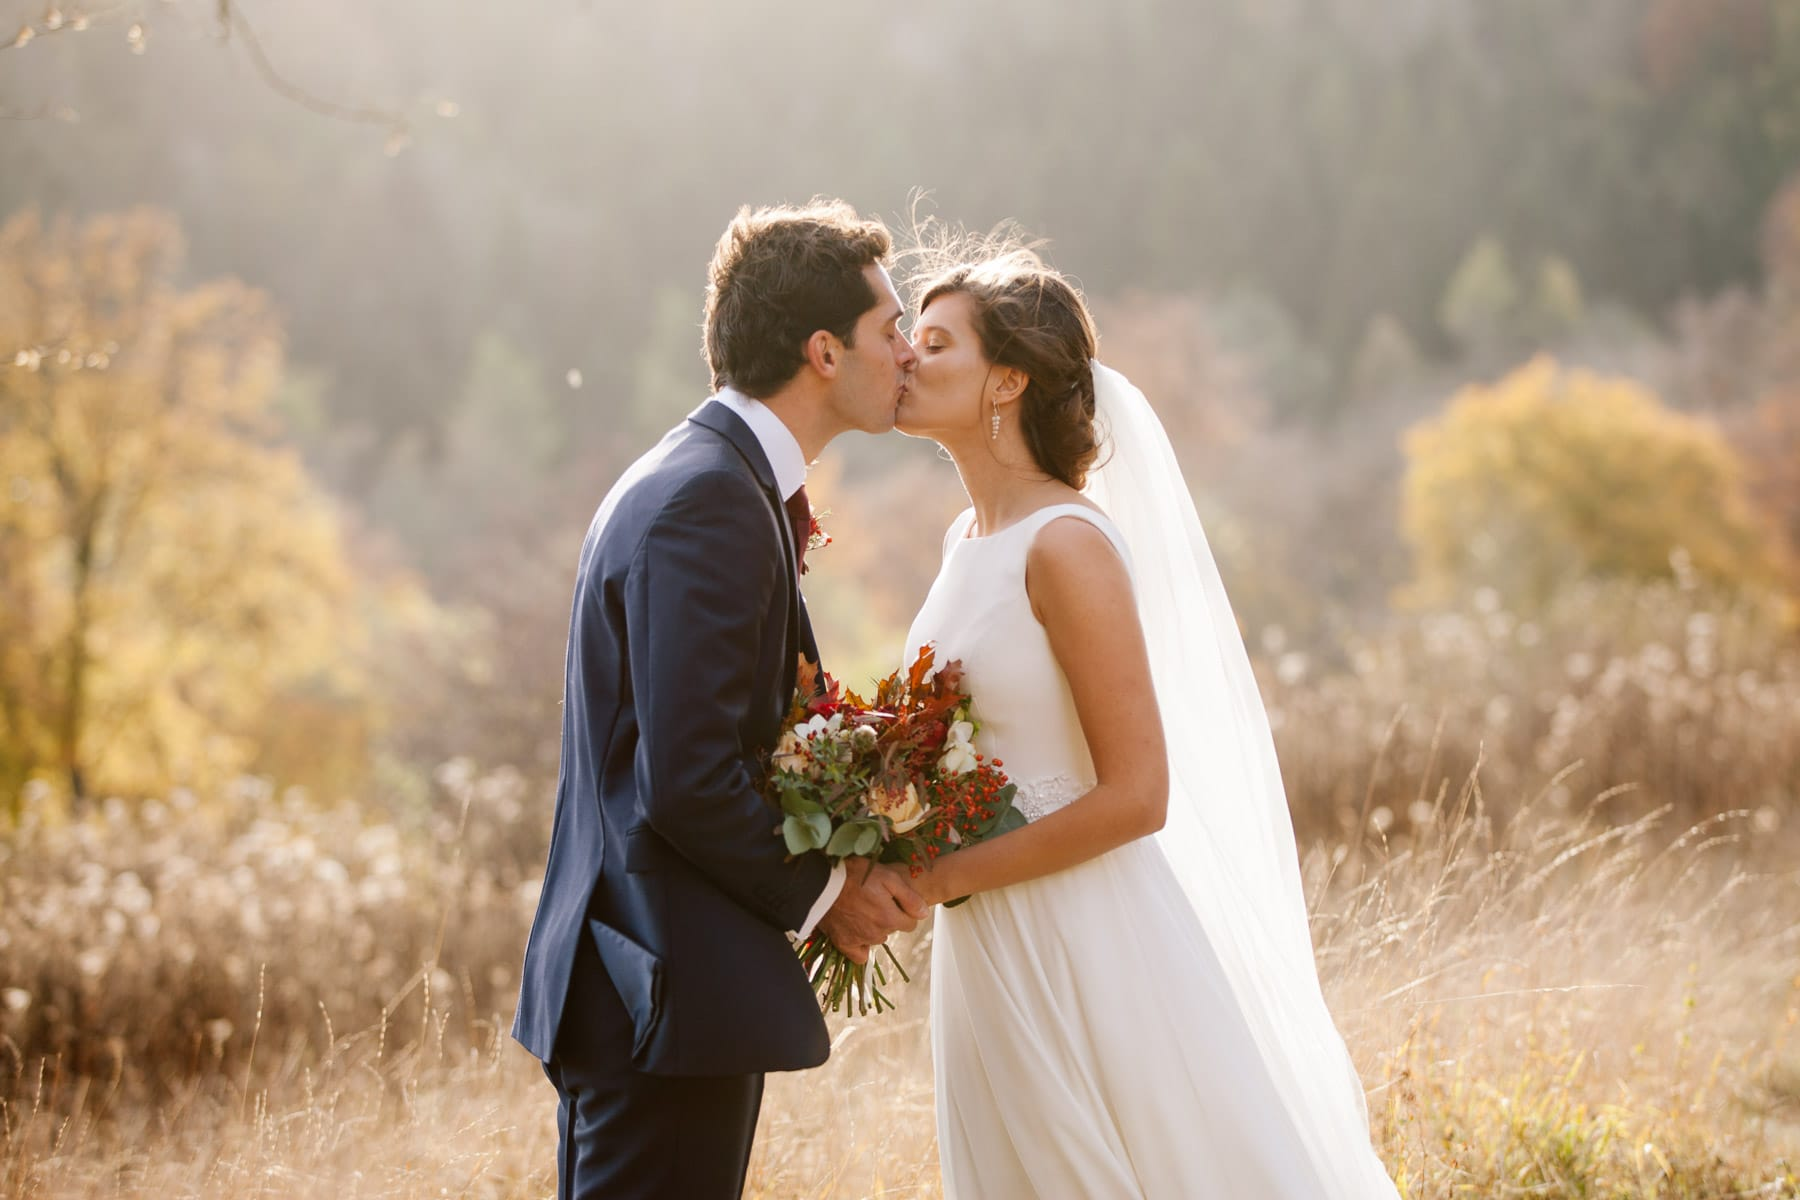 Bride and groom kiss with wheat field in the background at their elopement.